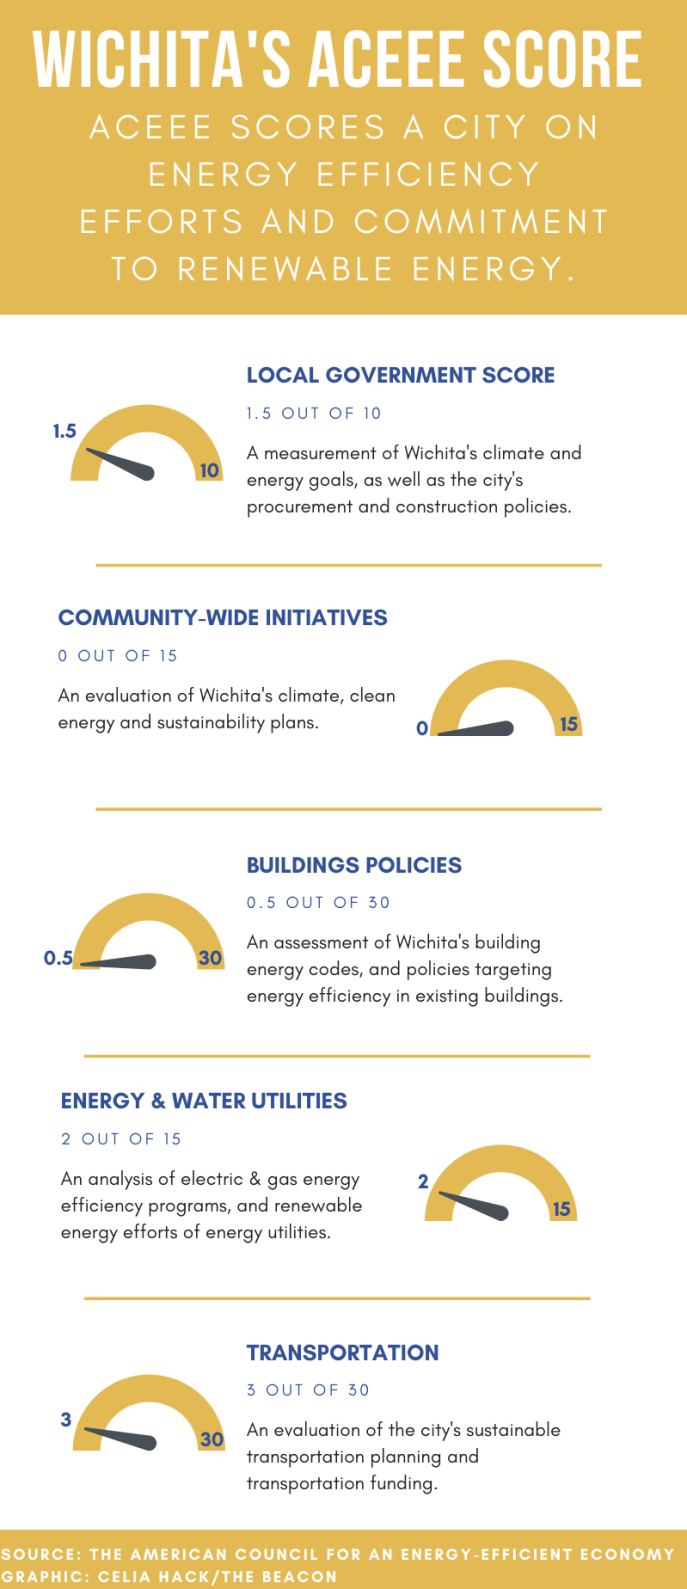 This graphic shows that the City of Wichita scores low on energy efficiency efforts and commitment to renewable energy. (Graphic by Celia Hack)